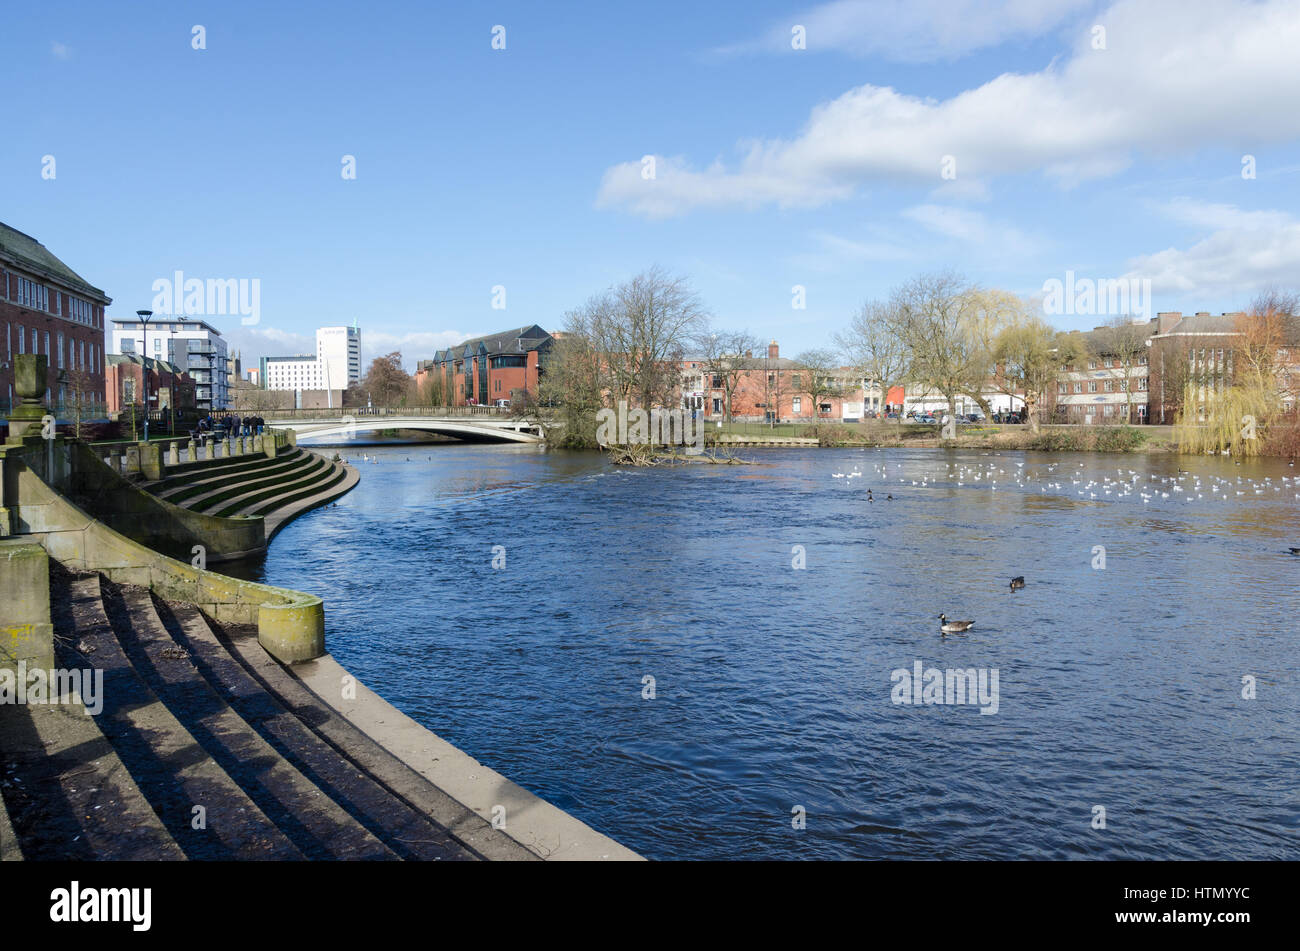 The River Derwent at Derby Riverside Gardens in the centre of Derby - Stock Image